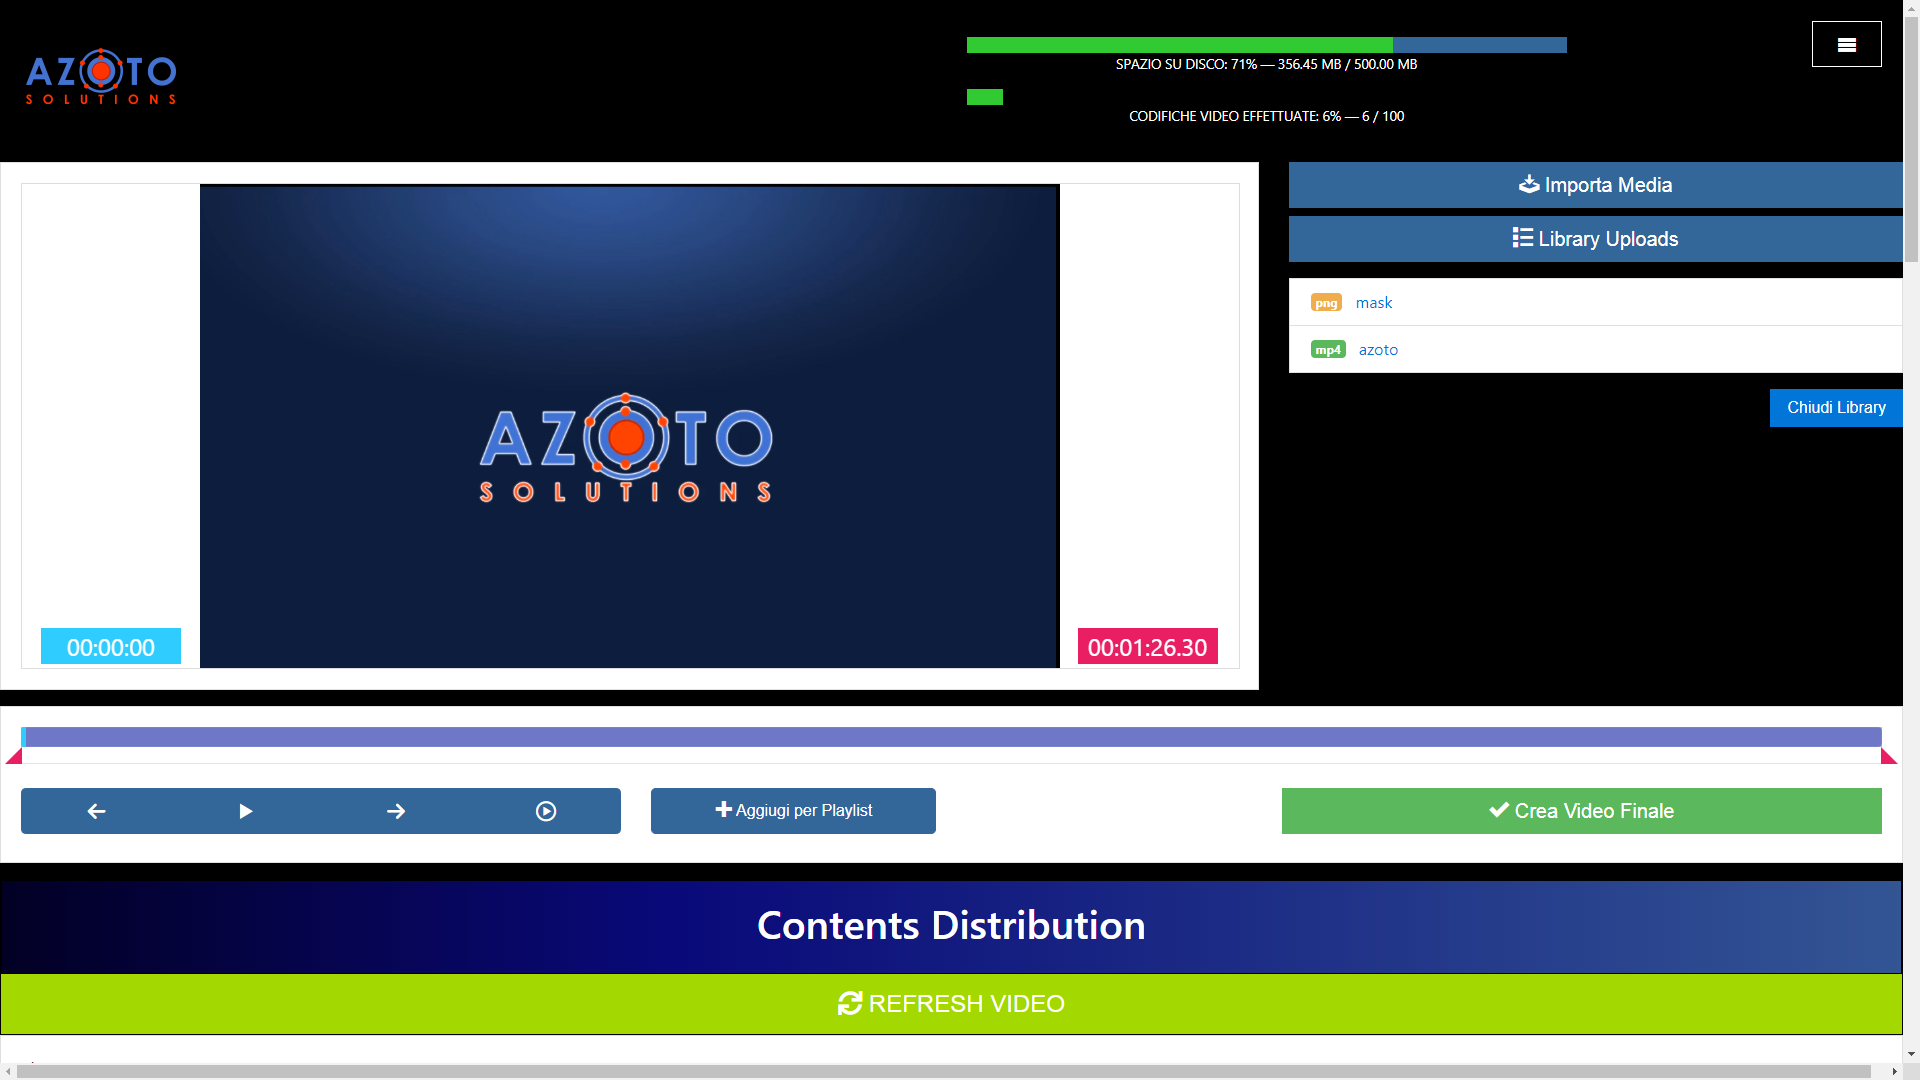 video ondemand streaming piattaforma